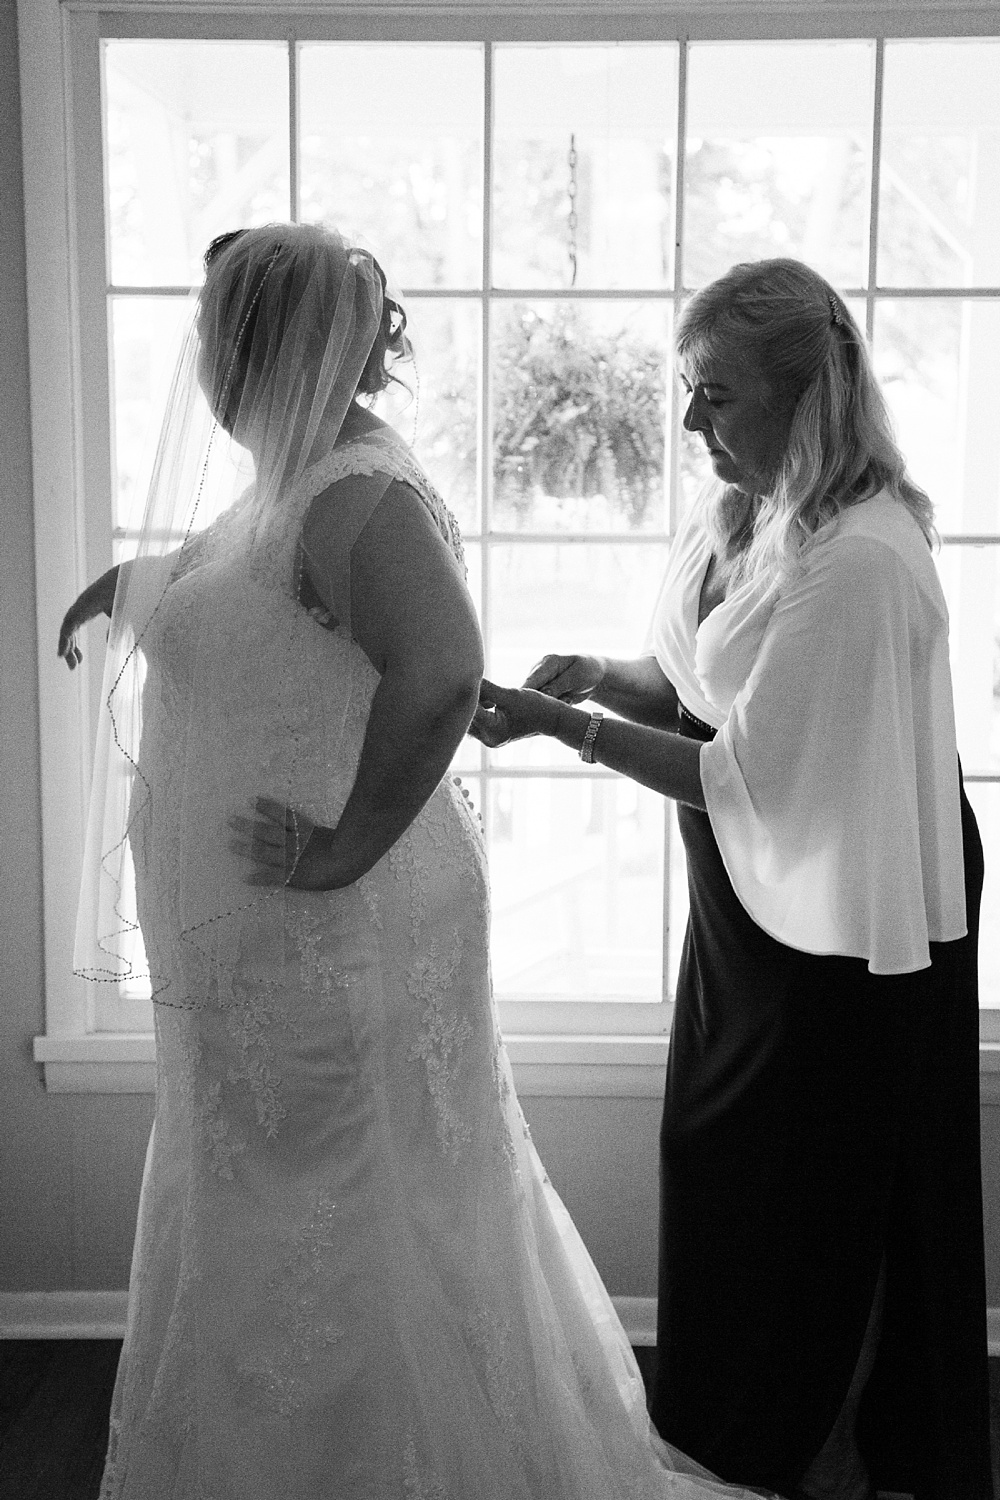 mother puts bride in her dress in front of a window